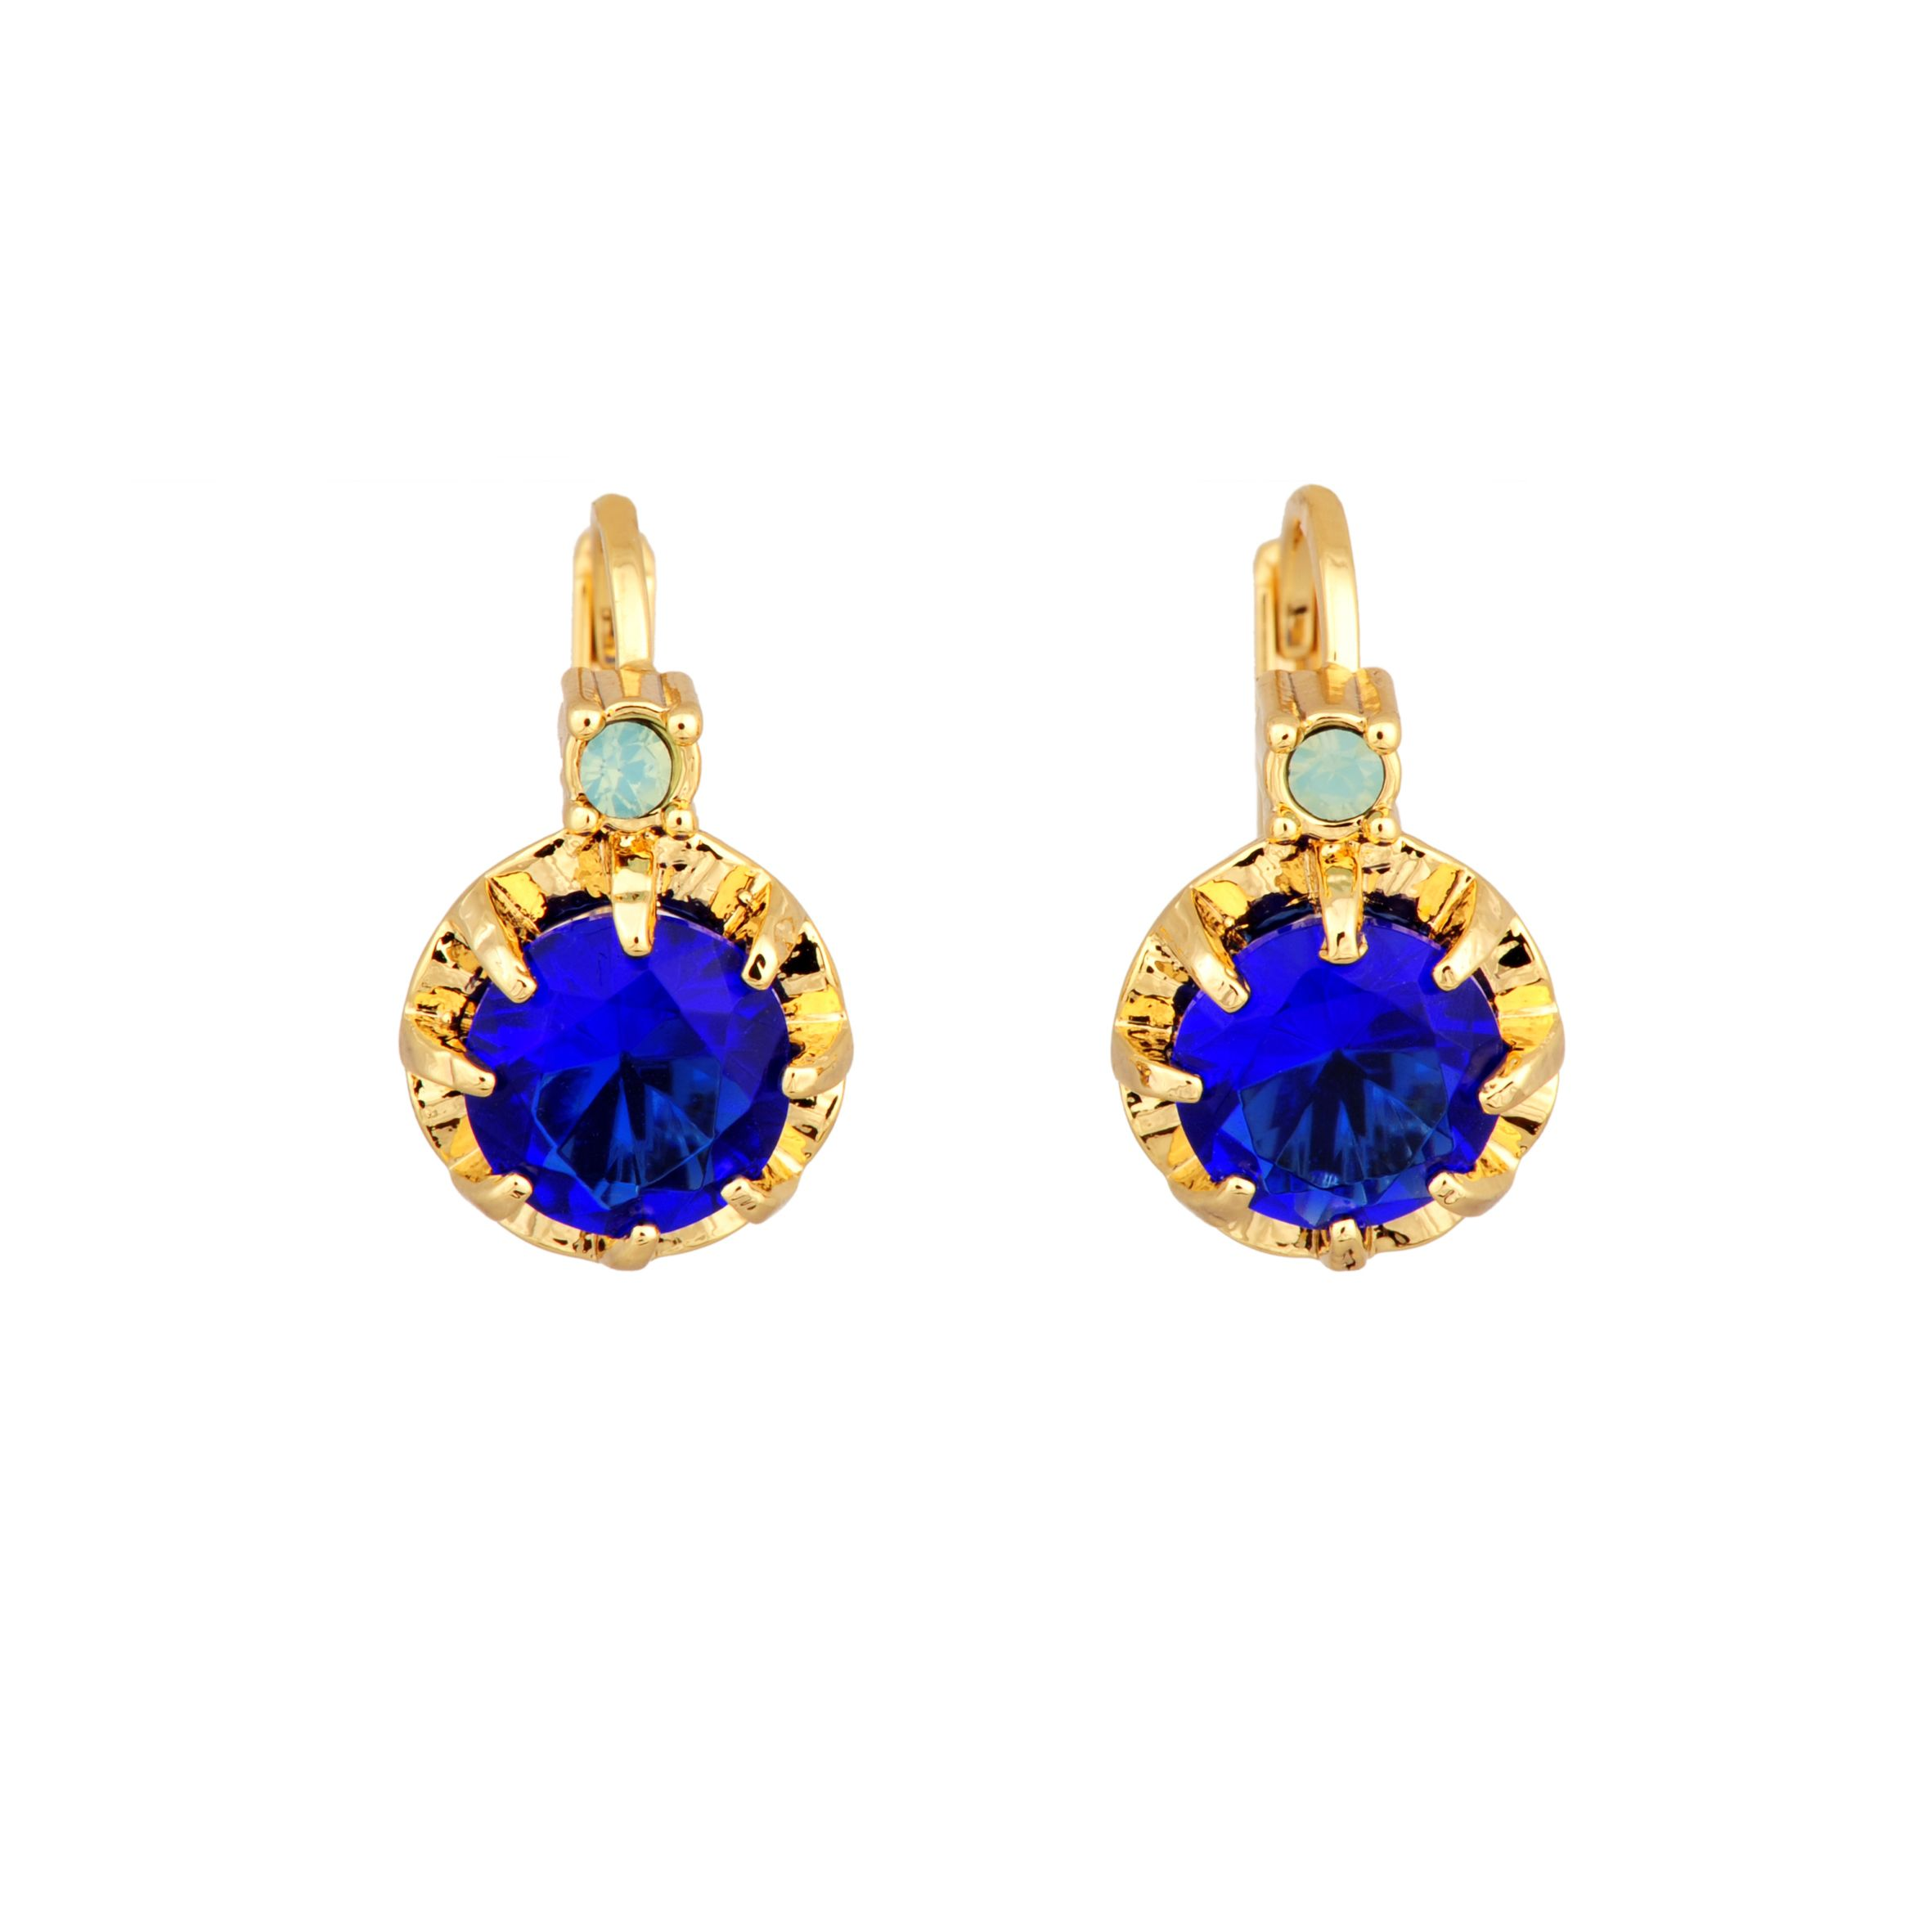 Beau Brut et Brillant Earrings